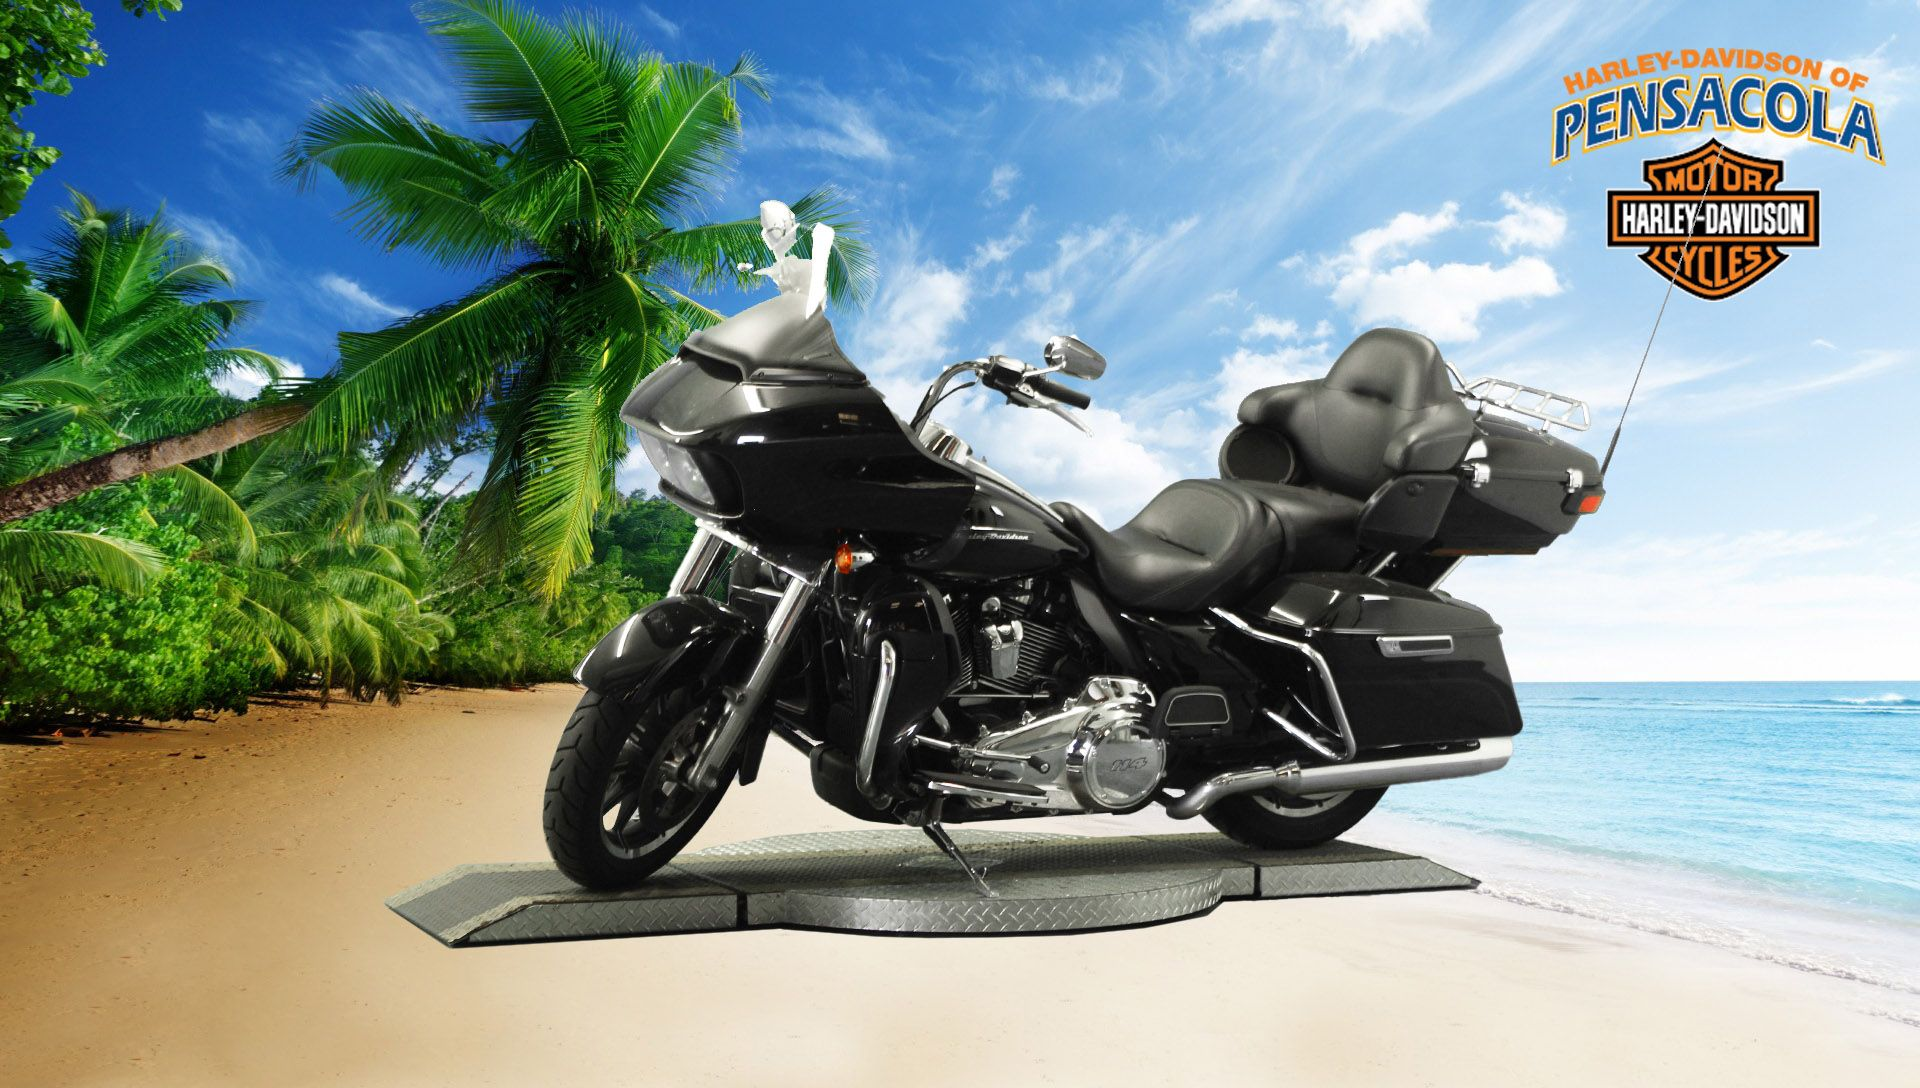 Pre-Owned 2019 Harley-Davidson Road Glide Ultra FLTRU